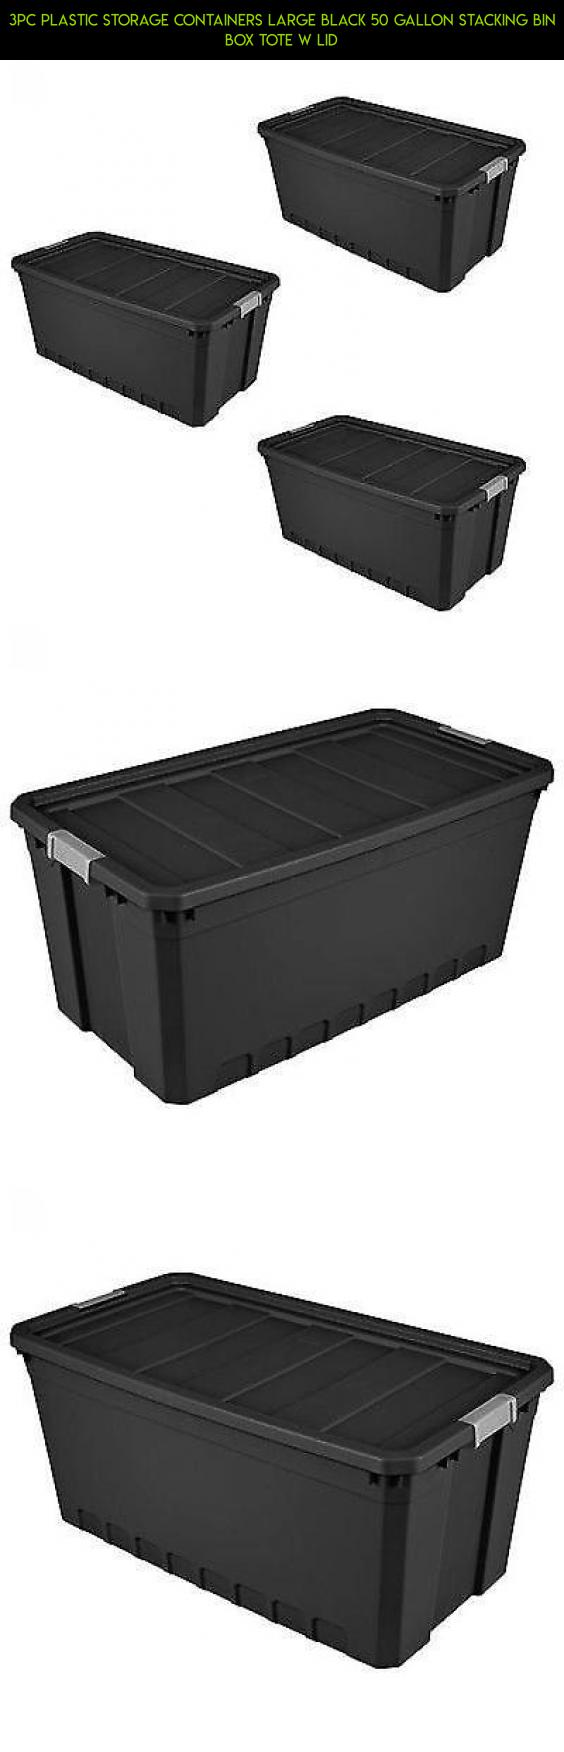 3pc Plastic Storage Containers Large Black 50 Gallon Stacking Bin Box Tote W Lid #shopping  sc 1 st  Pinterest & 3pc Plastic Storage Containers Large Black 50 Gallon Stacking Bin ...